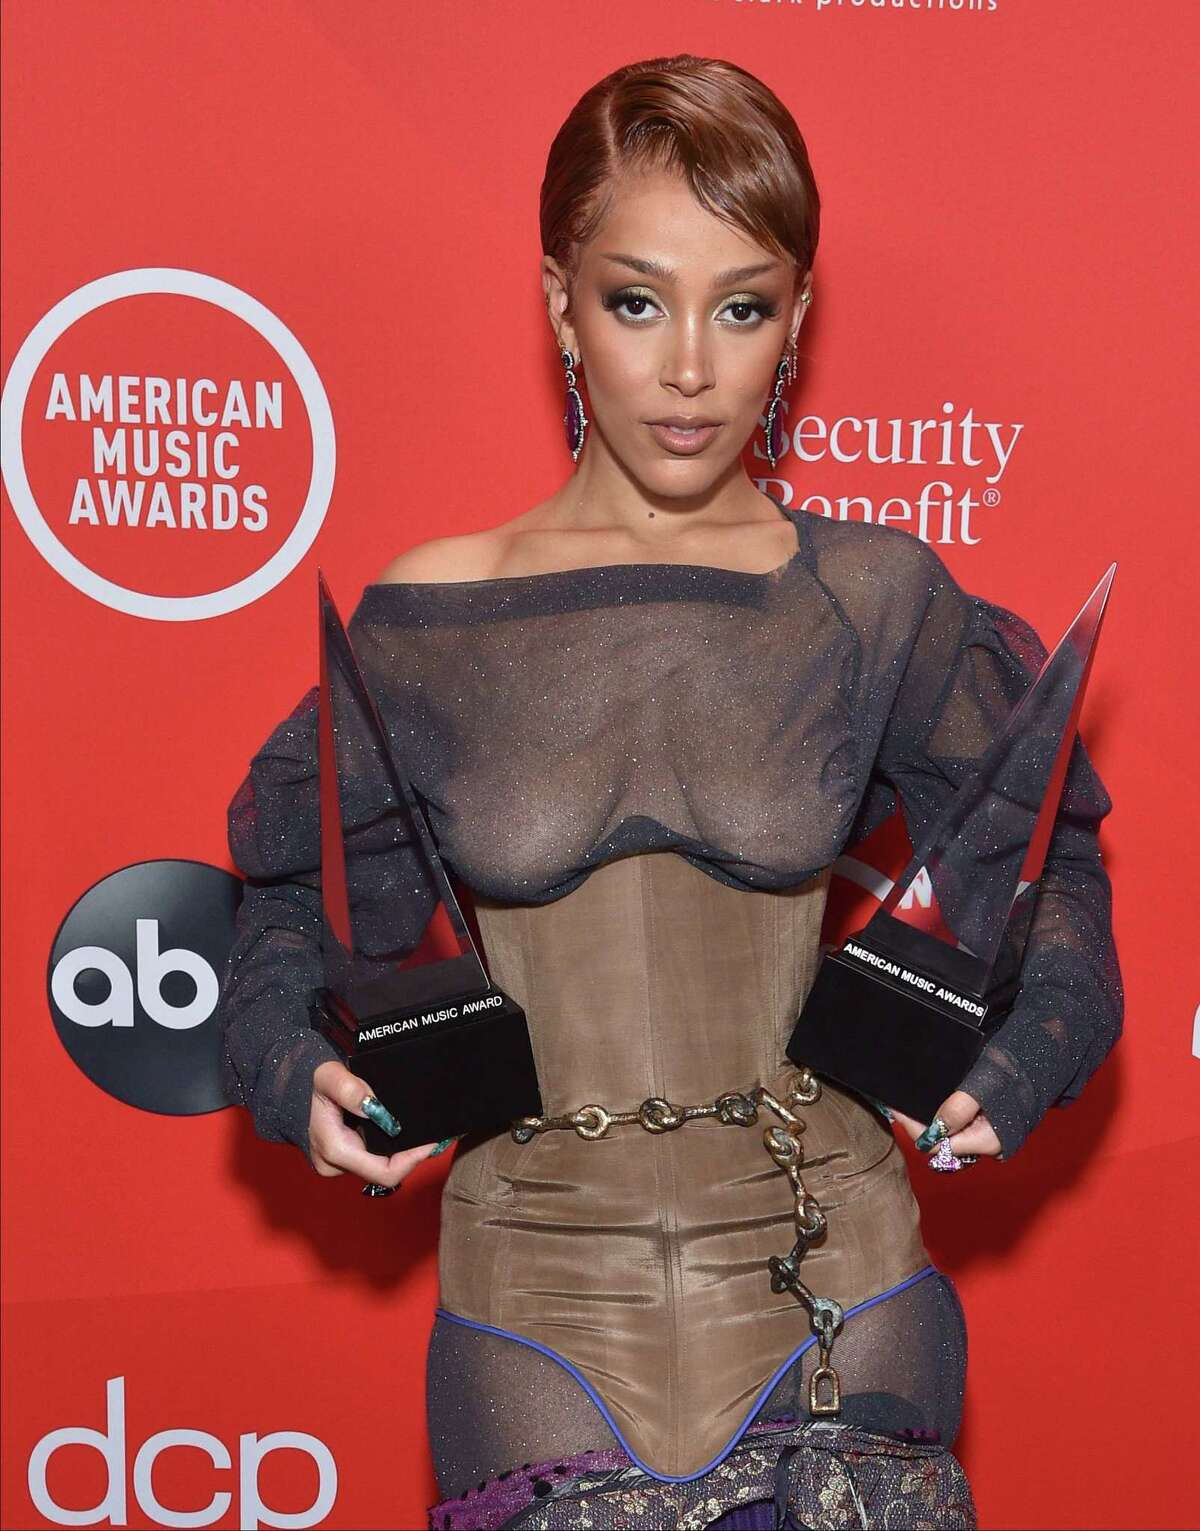 In this handout image courtesy of ABC singer Doja Cat poses with her awards for Favorite Female Artist Soul/R&B and New Artist of the Year during the 2020 American Music Awards aired from the Microsoft theatre on November 22, 2020 in Los Angeles. (Photo by ABC / American Broadcasting Companies, Inc. / ABC / AFP) / RESTRICTED TO EDITORIAL USE - MANDATORY CREDIT